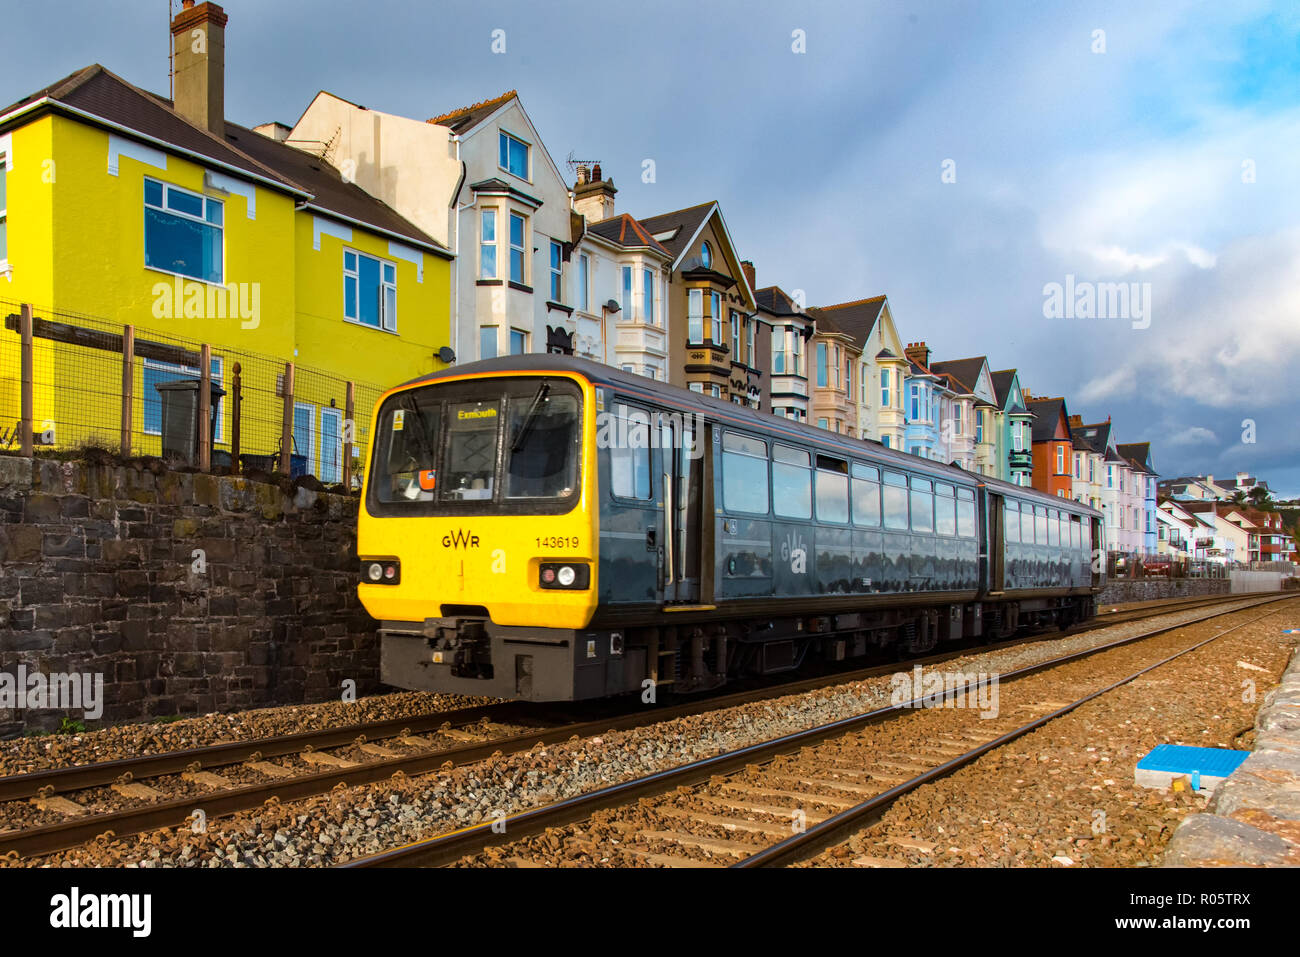 DAWLISH, DEVON, UK - 26OCT2018: GWR Class 143 Pacer trainset 143619 travelling north after leaving Dawlish Station. - Stock Image